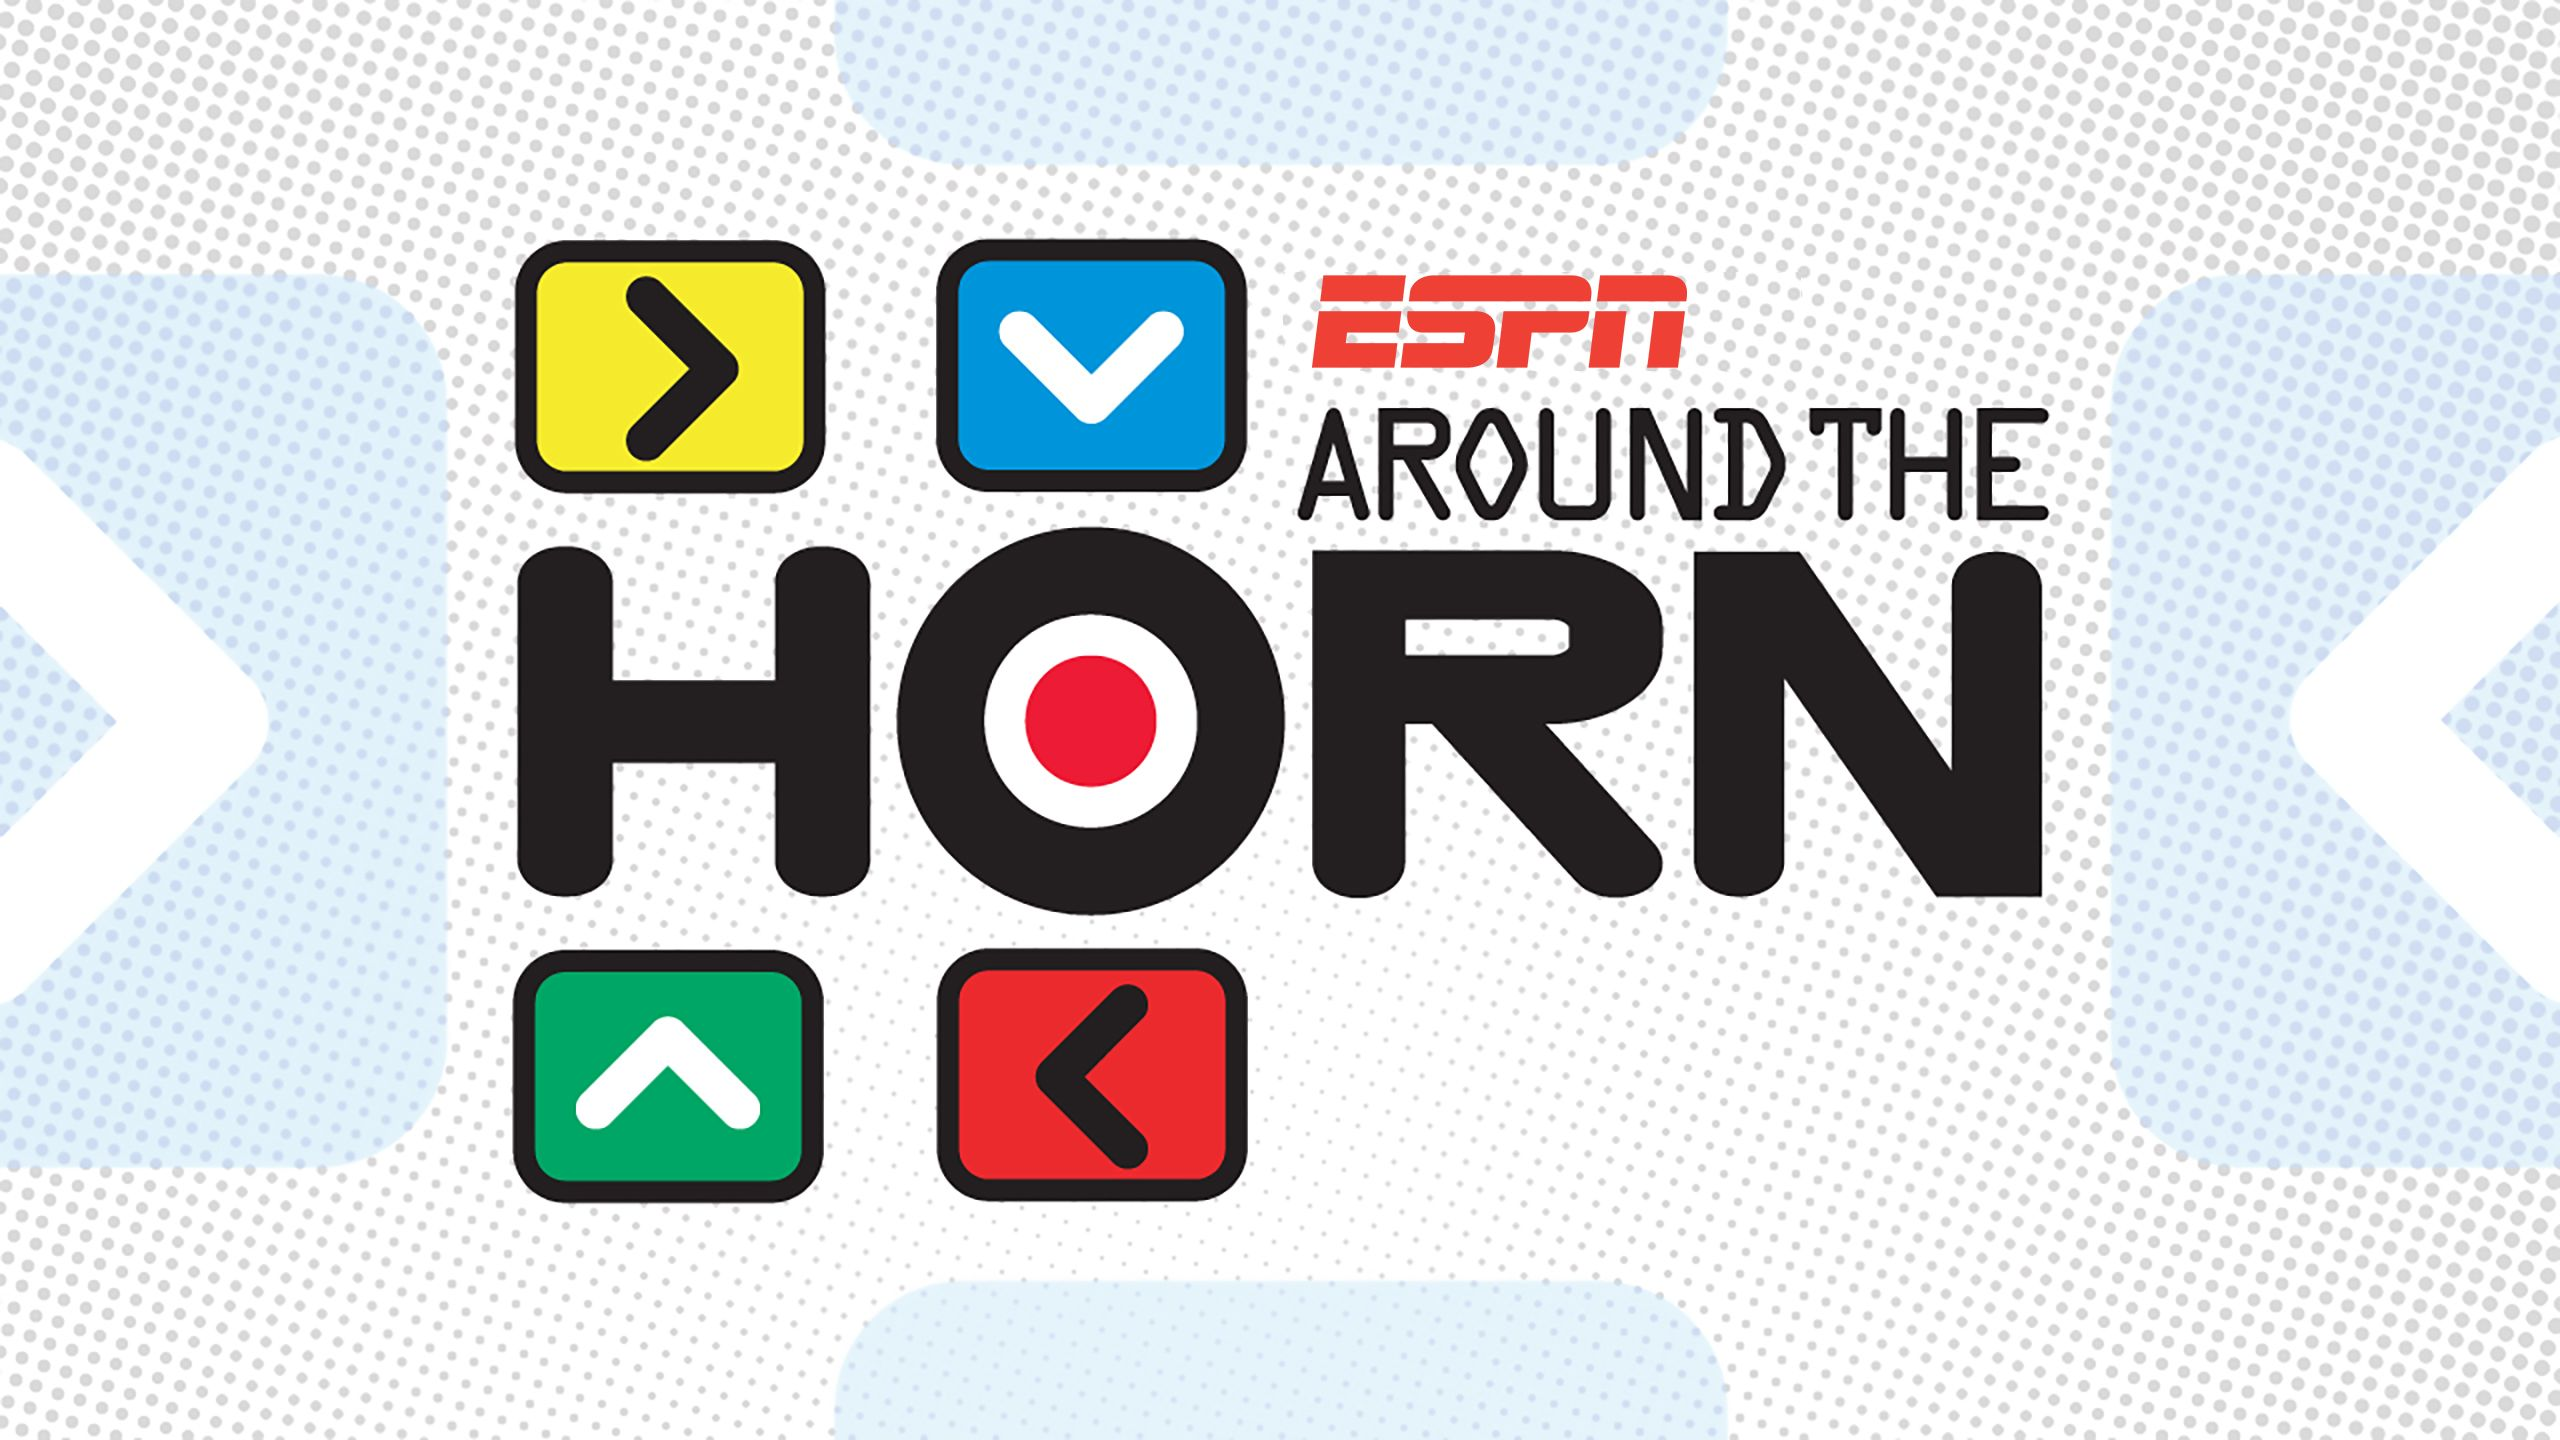 Fri, 2/23 - Around The Horn